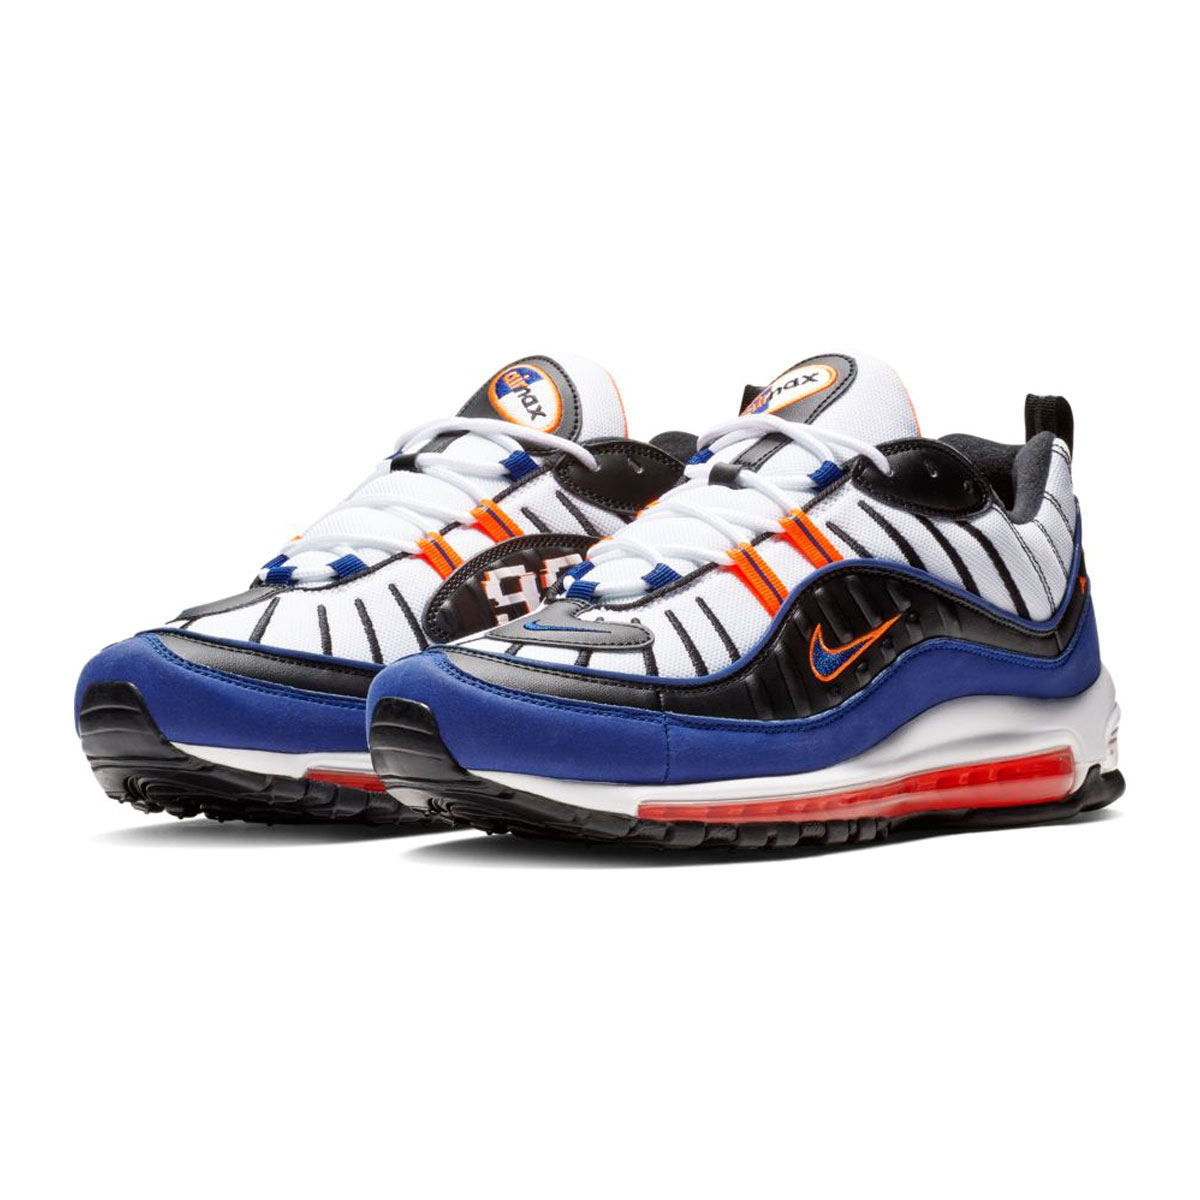 c47a9a1021 Kinetics: NIKE AIR MAX 98 (WHITE/DEEP ROYAL BLUE-TOTAL ORANGE-BLACK ...